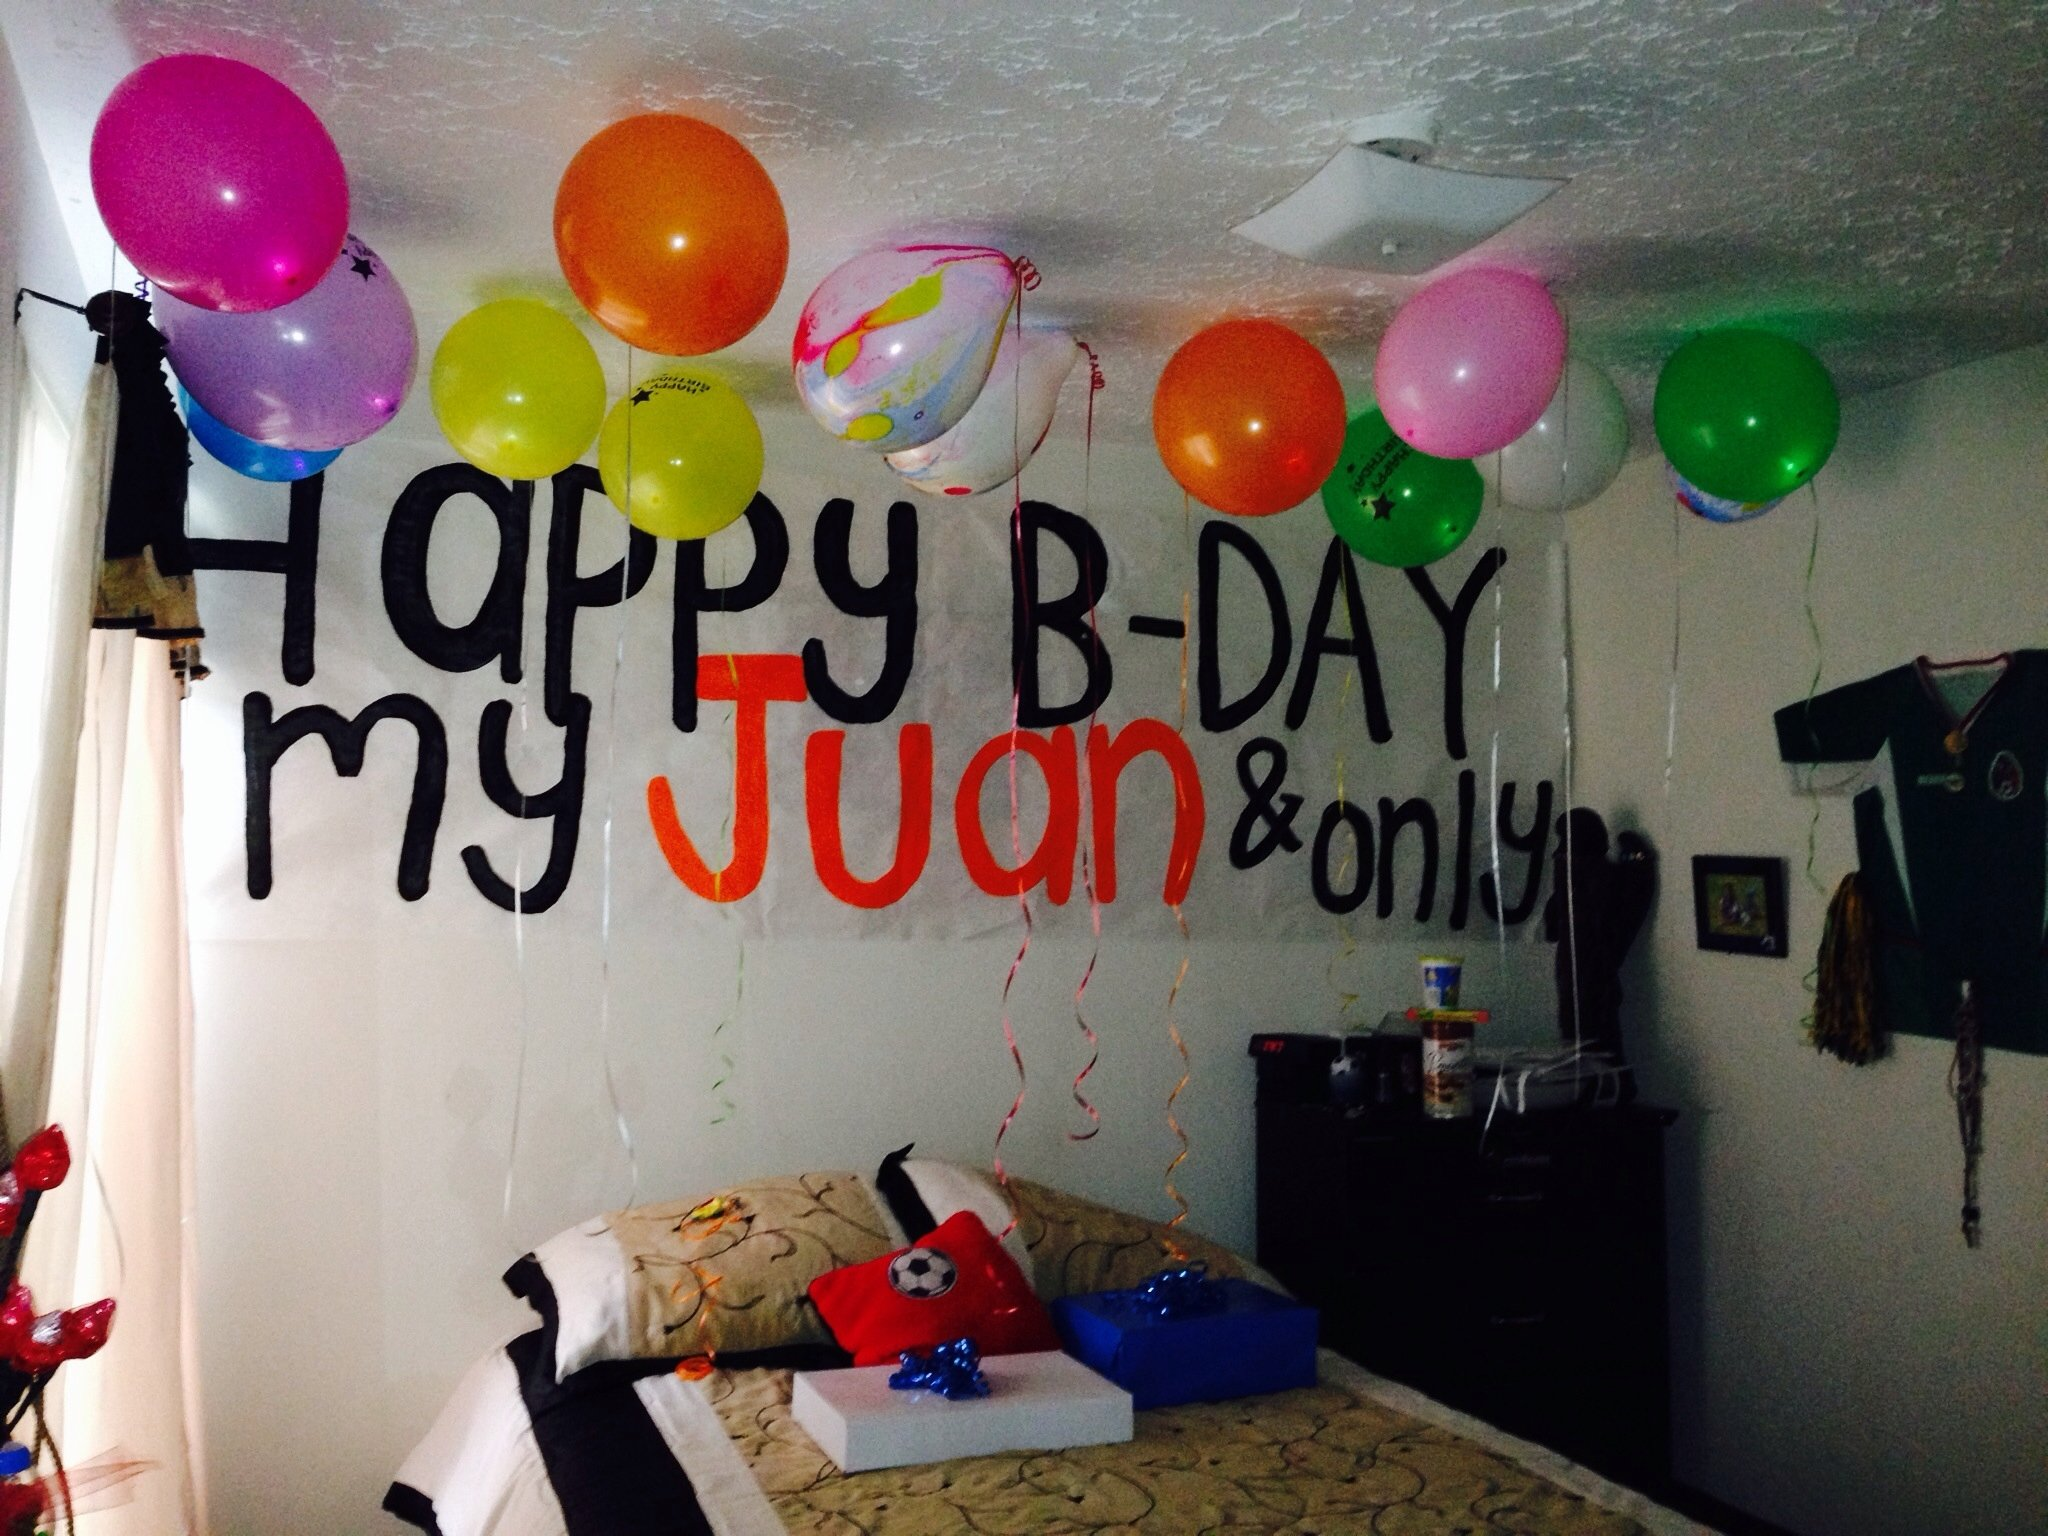 10 Fashionable Birthday Surprise Ideas For Girlfriend If The Name Fits Go It